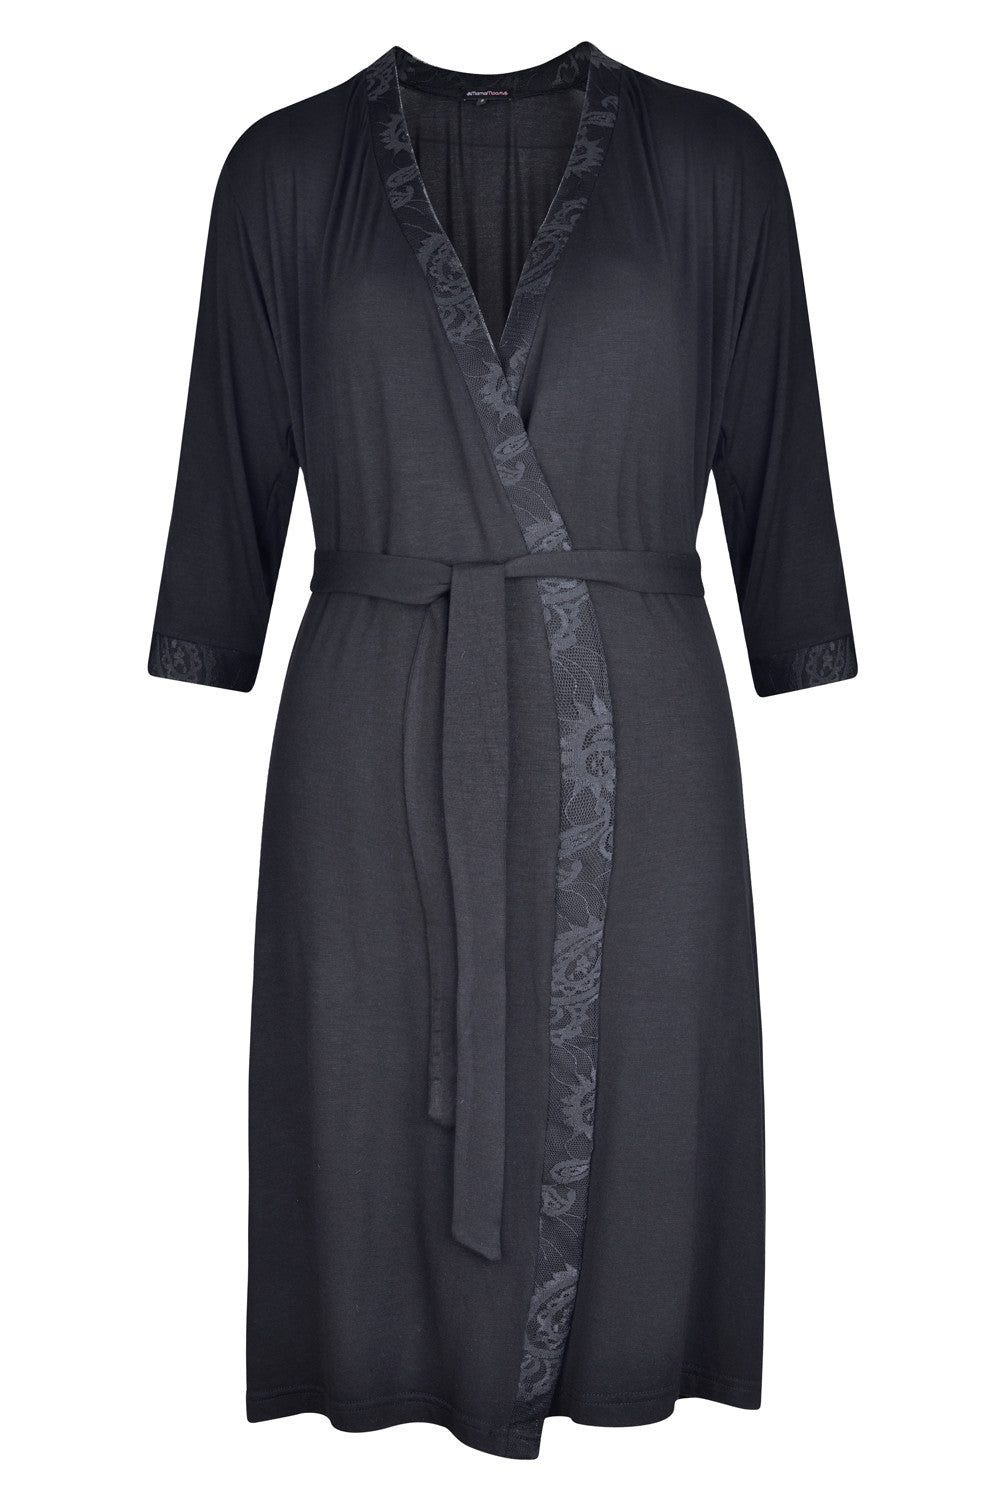 0824df3e8f1 MamaMoosh Indulgence Maternity Dressing Gown Black - front ...